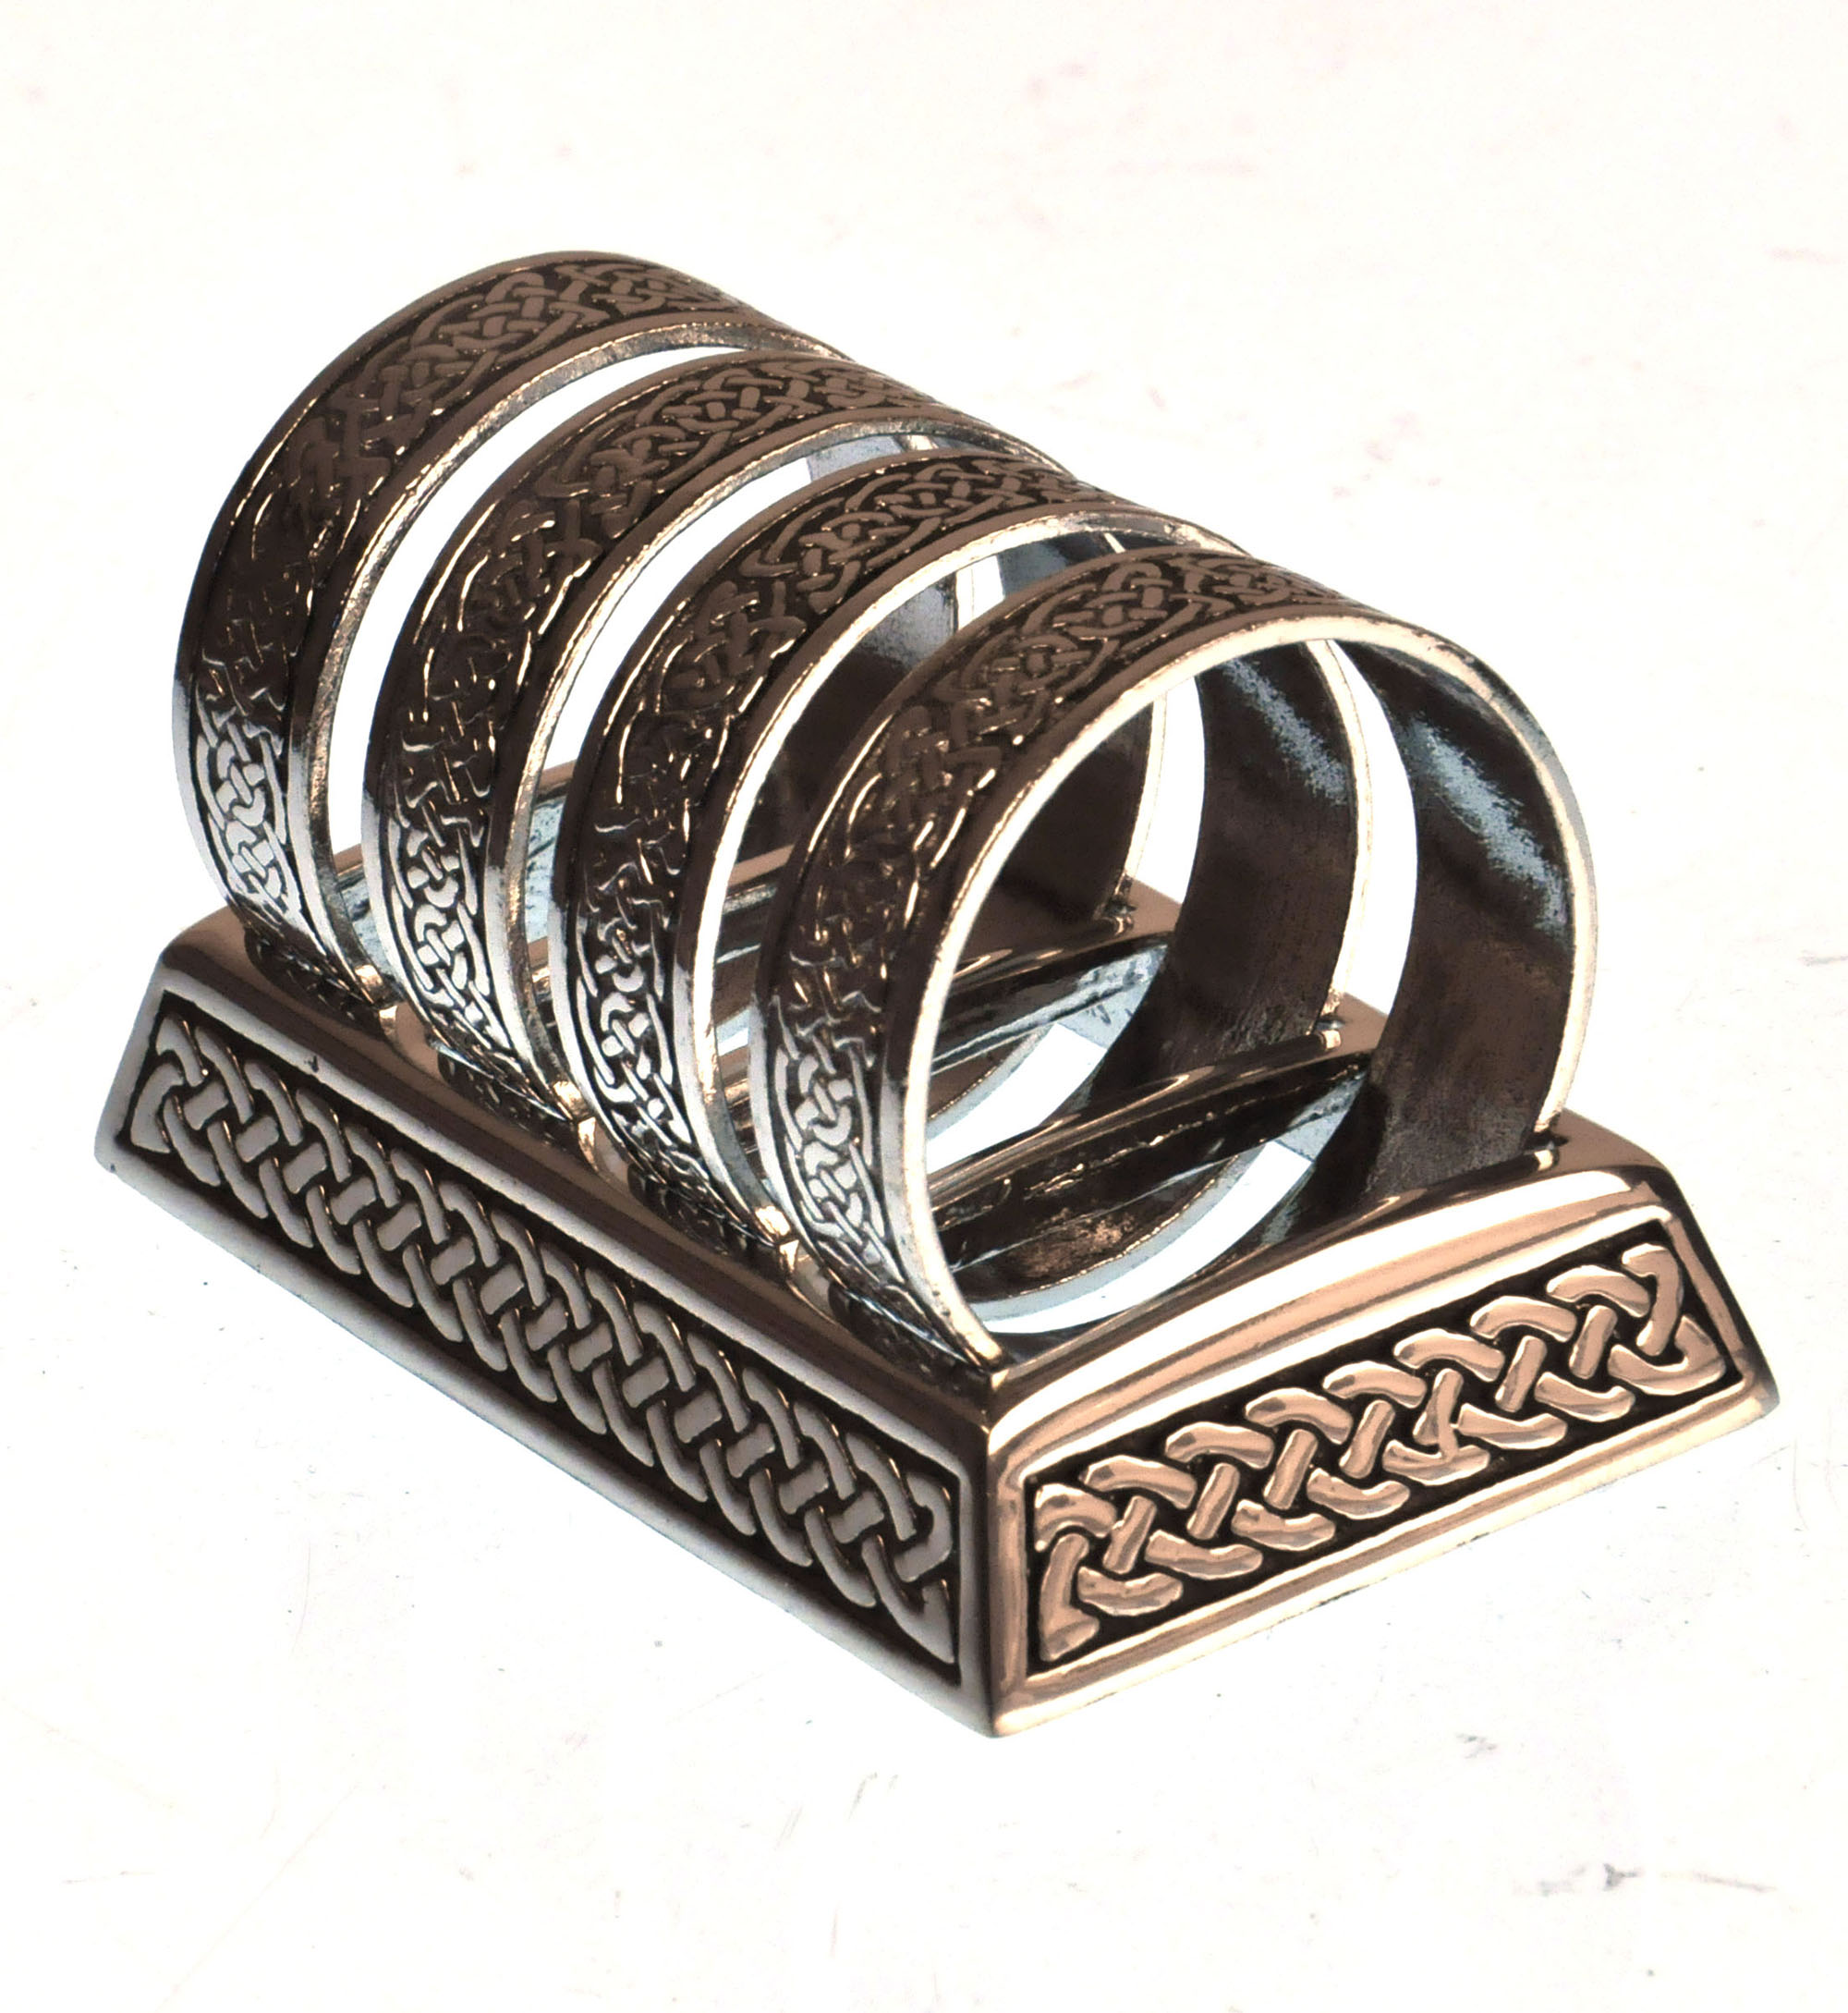 mad patterns them from easy s stacked names stack customize for can with jewelry rings so hammered are pewter i and fun these pj it make stamped metal tool finish to coordinates logo we